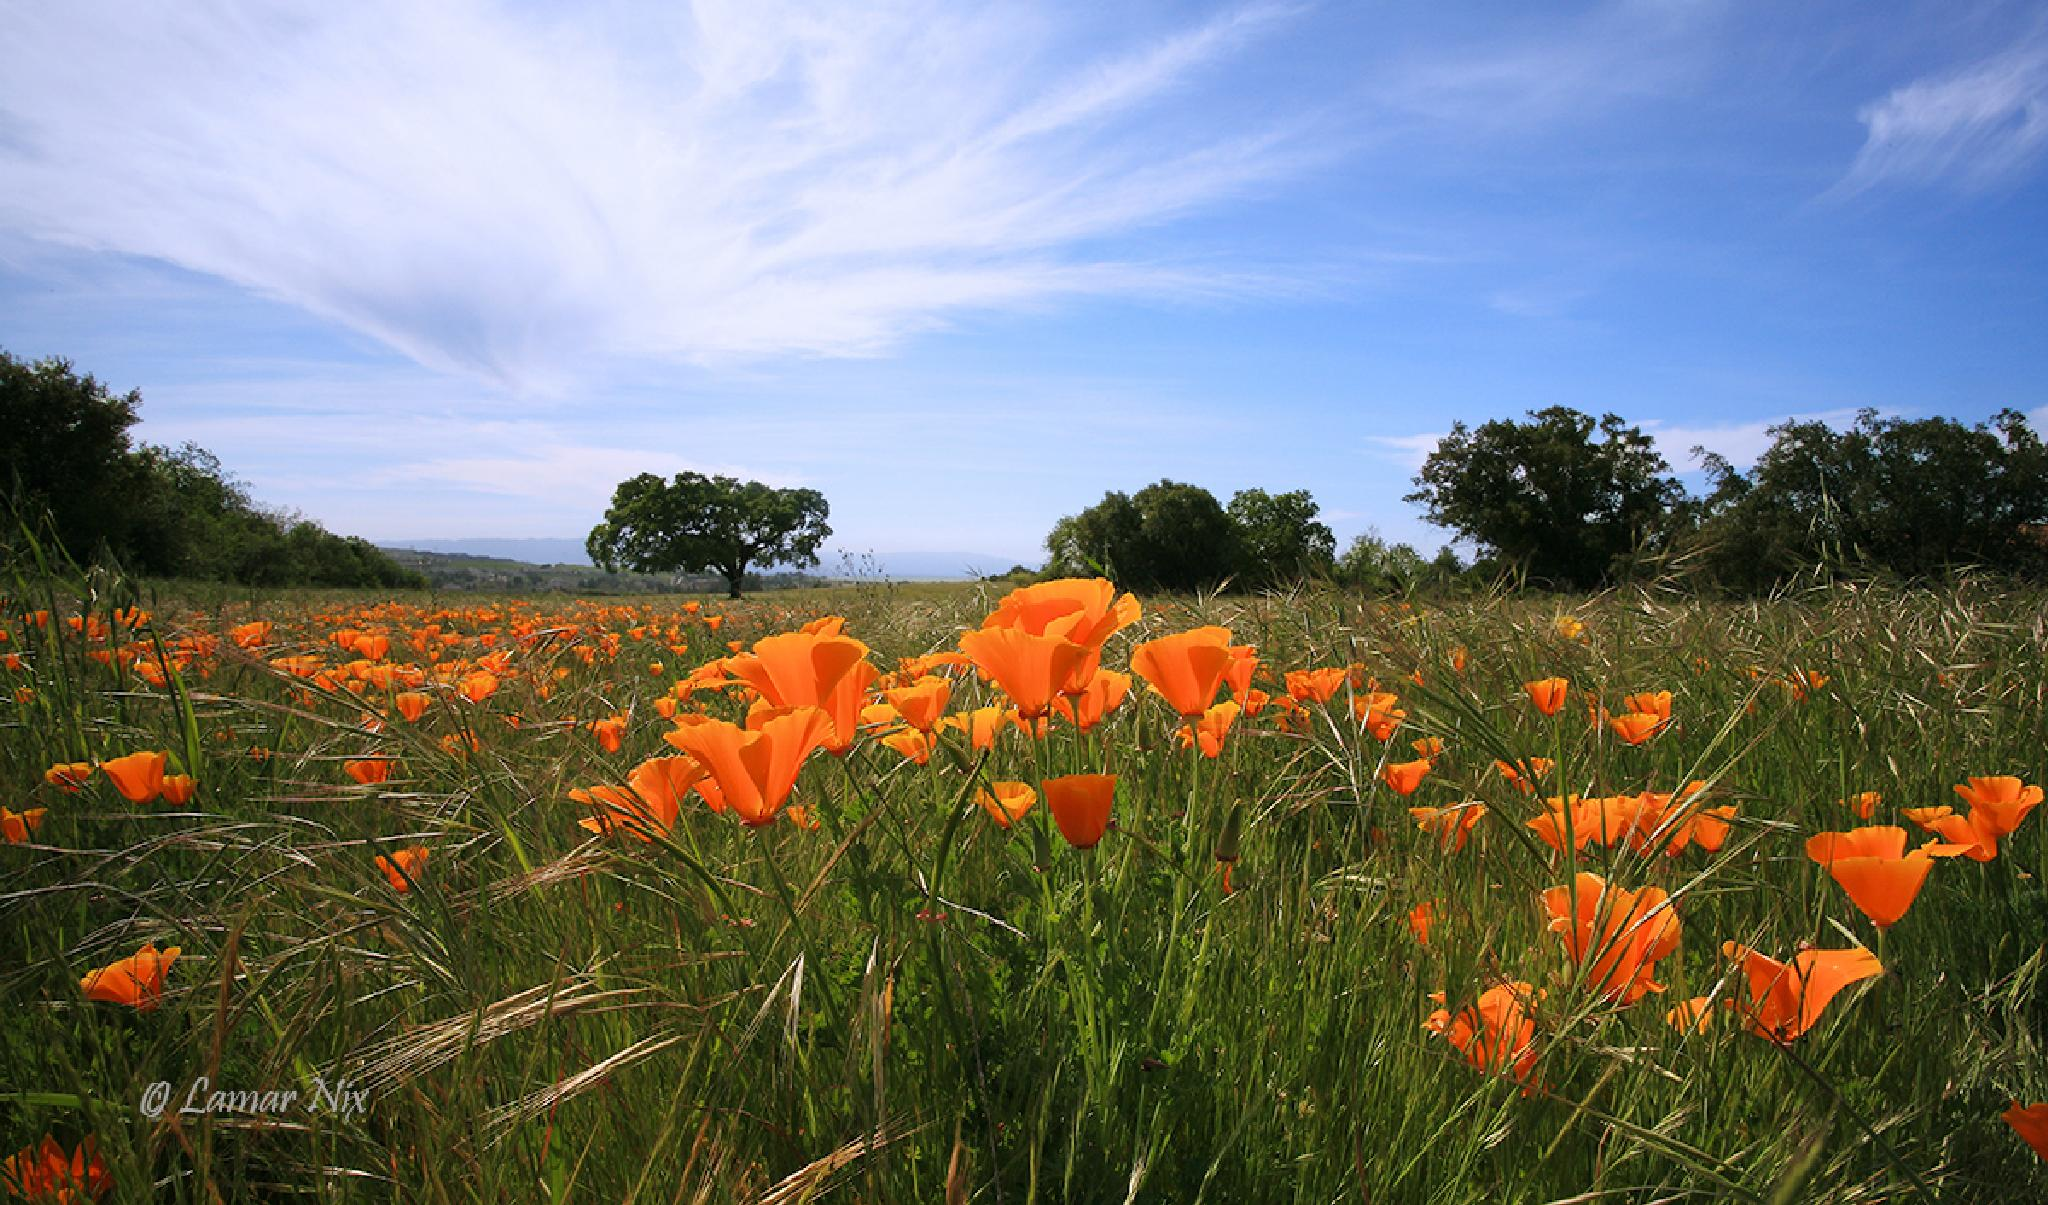 Poppy Field by Lamar Nix